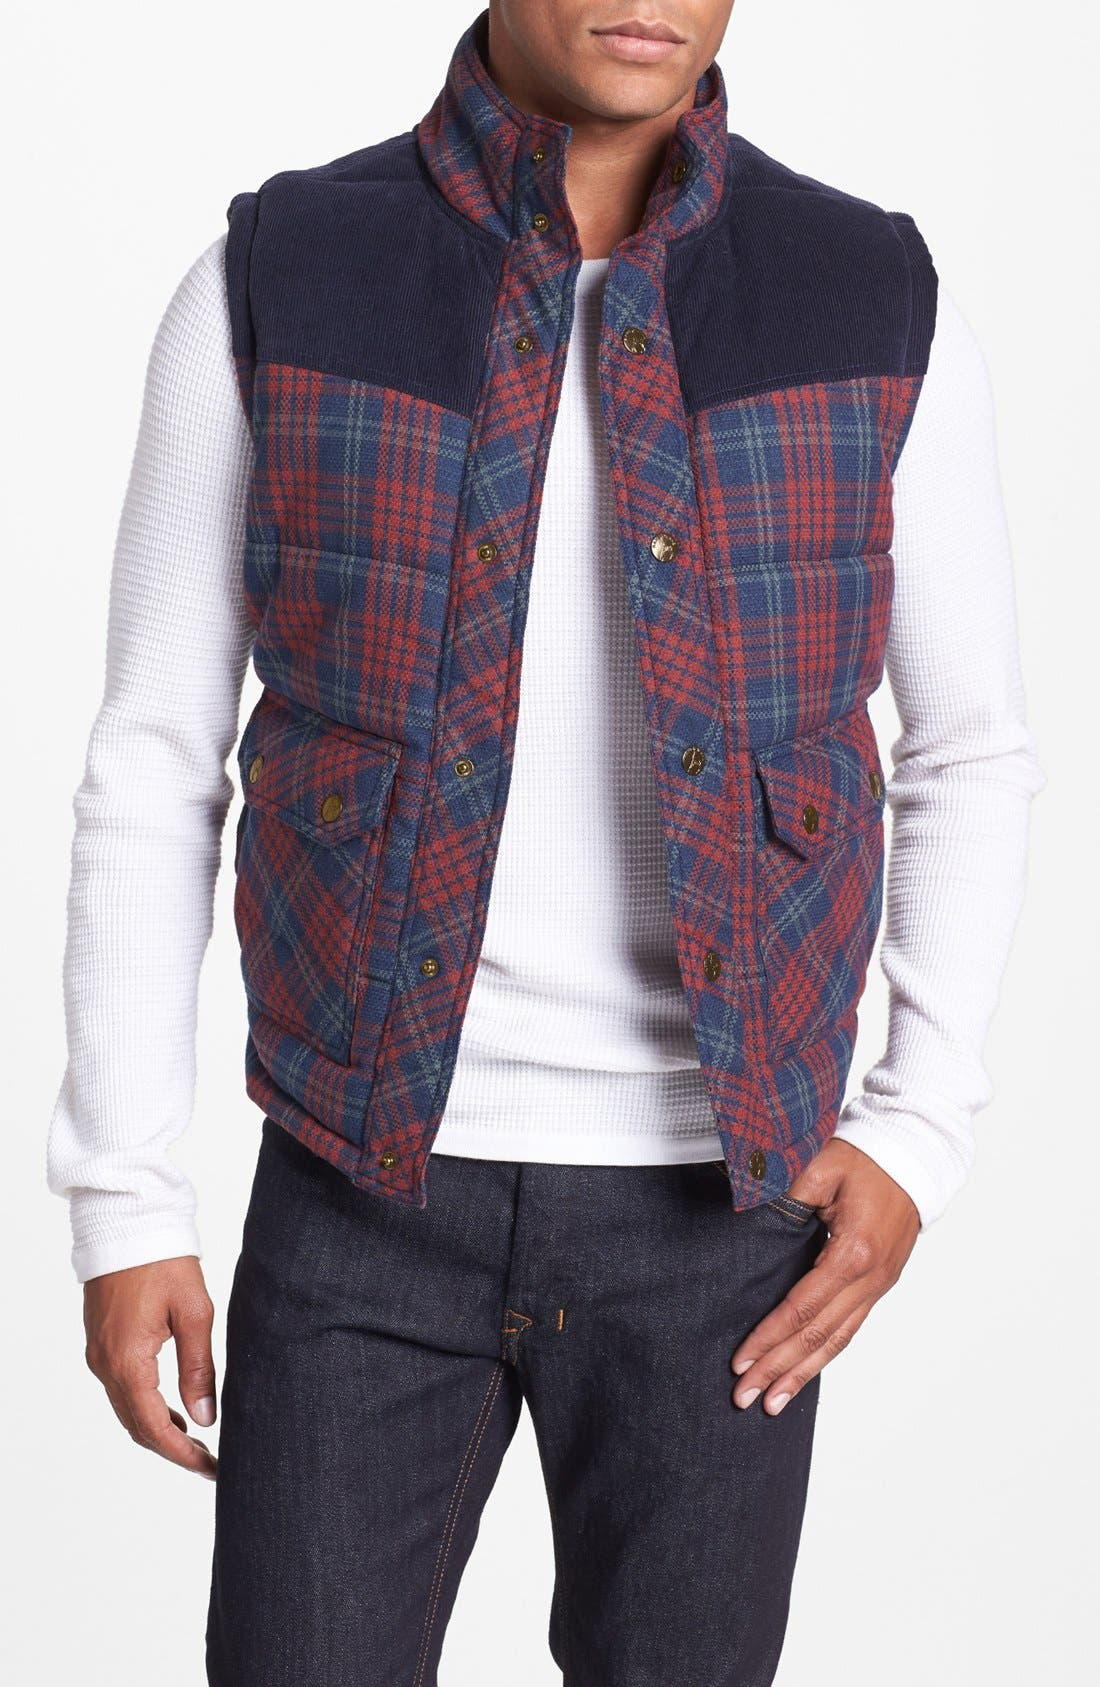 Main Image - Kane & Unke Quilted Plaid Vest with Corduroy Yokes